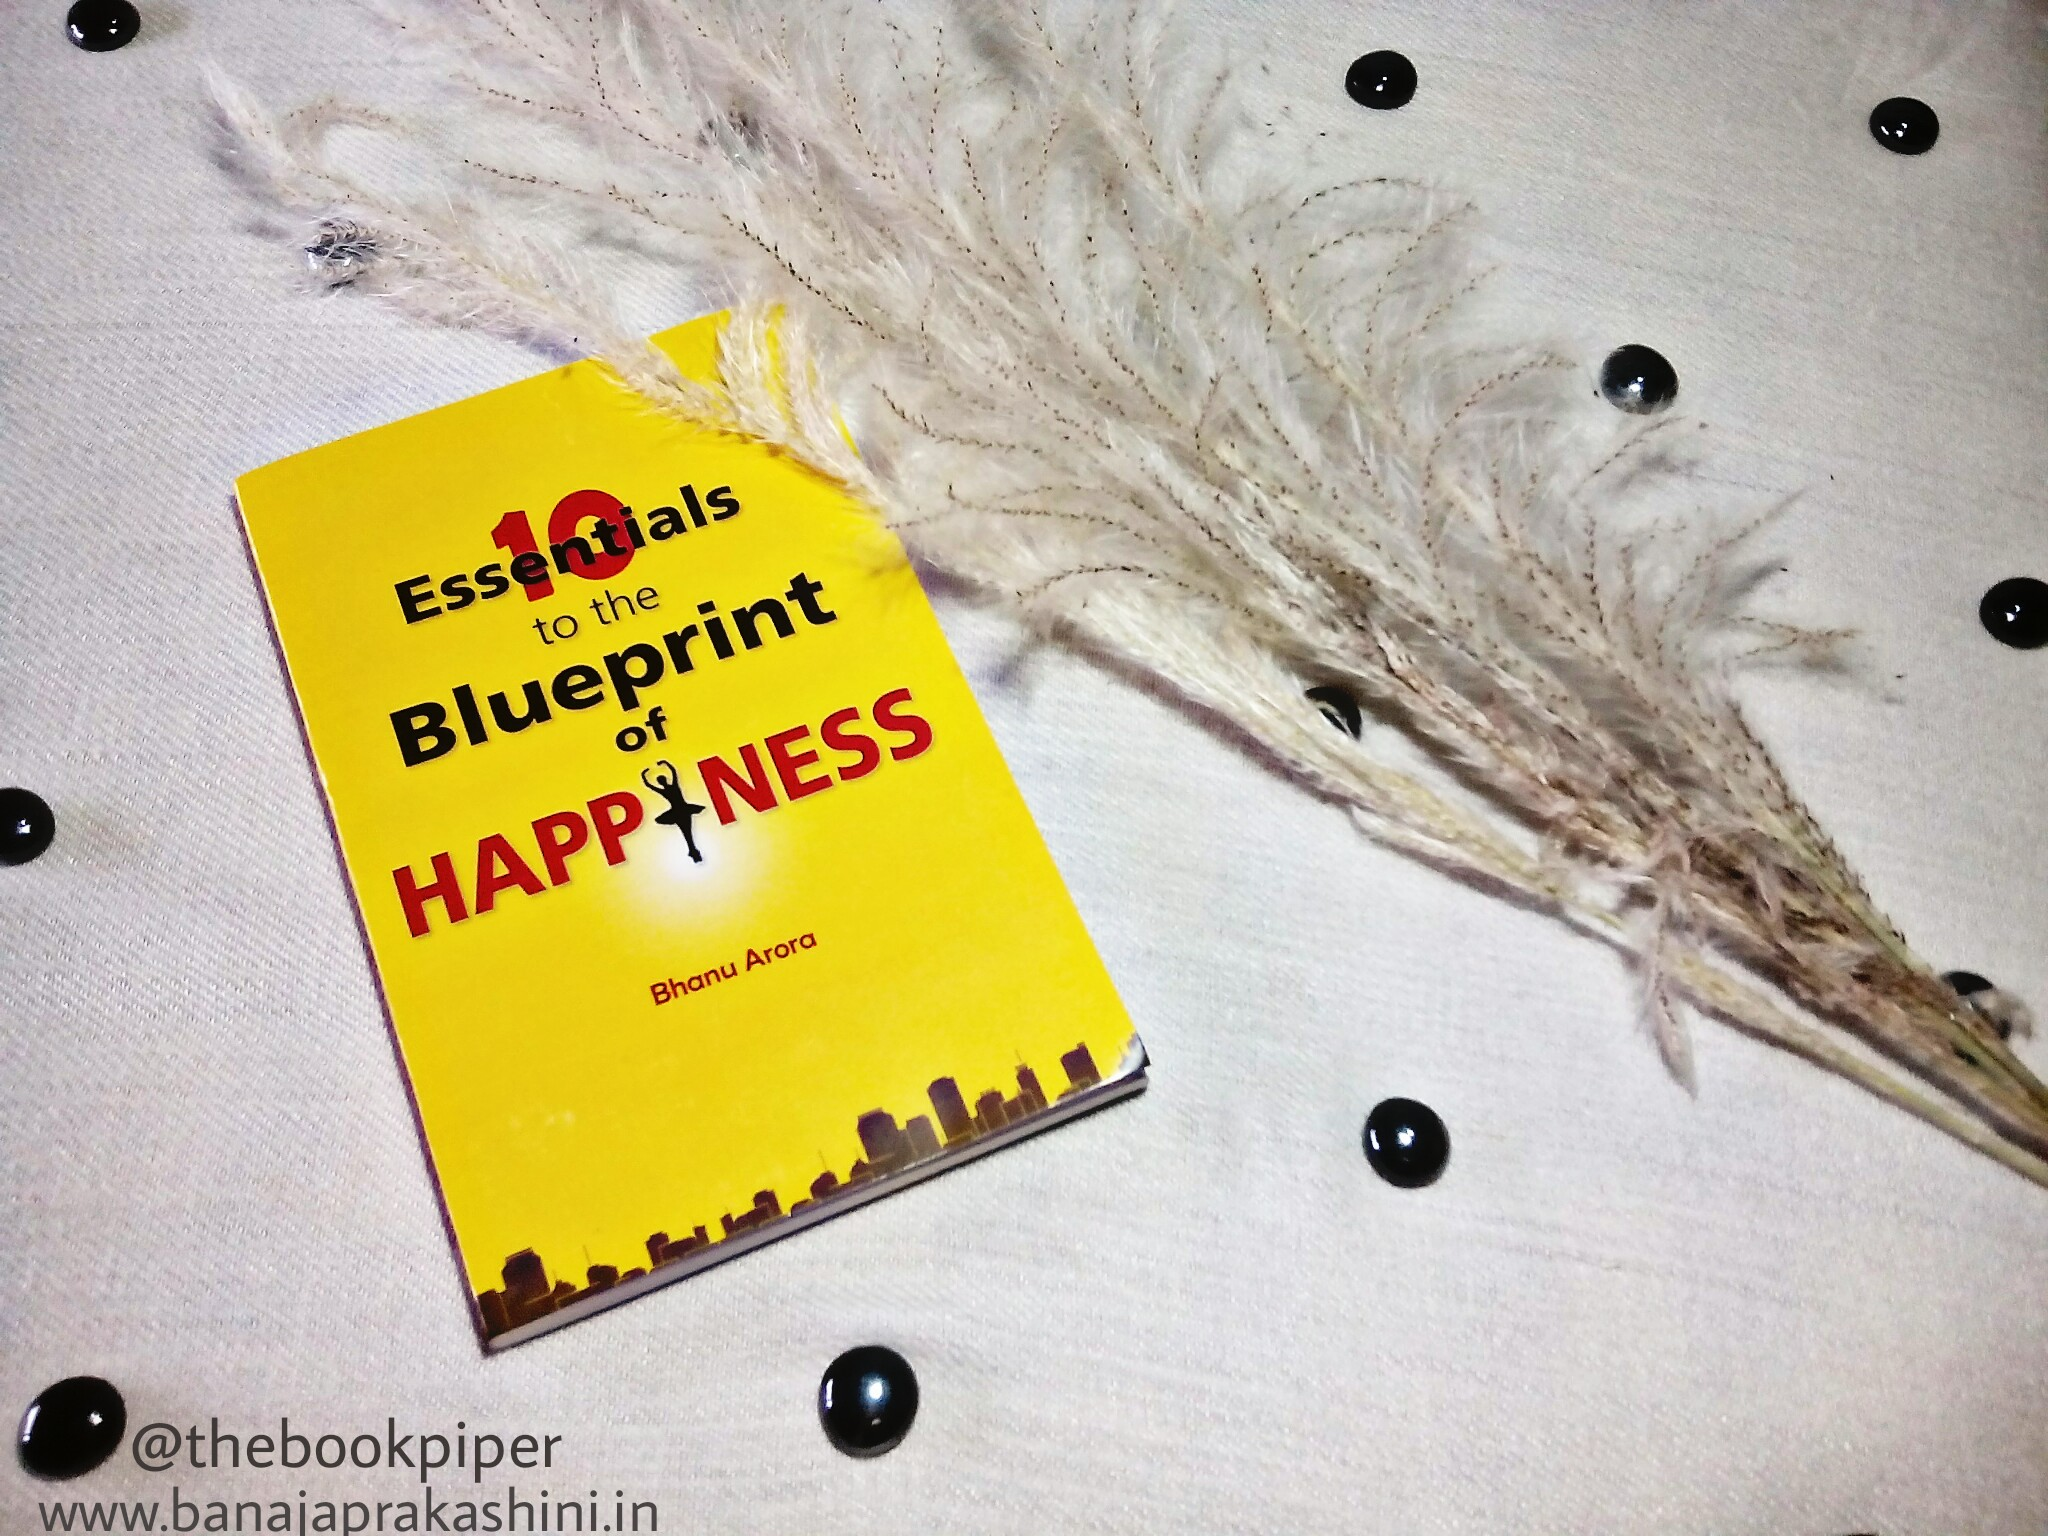 Review Pen: 10 Essentials To The Blueprint Of Happiness by Bhanu Arora